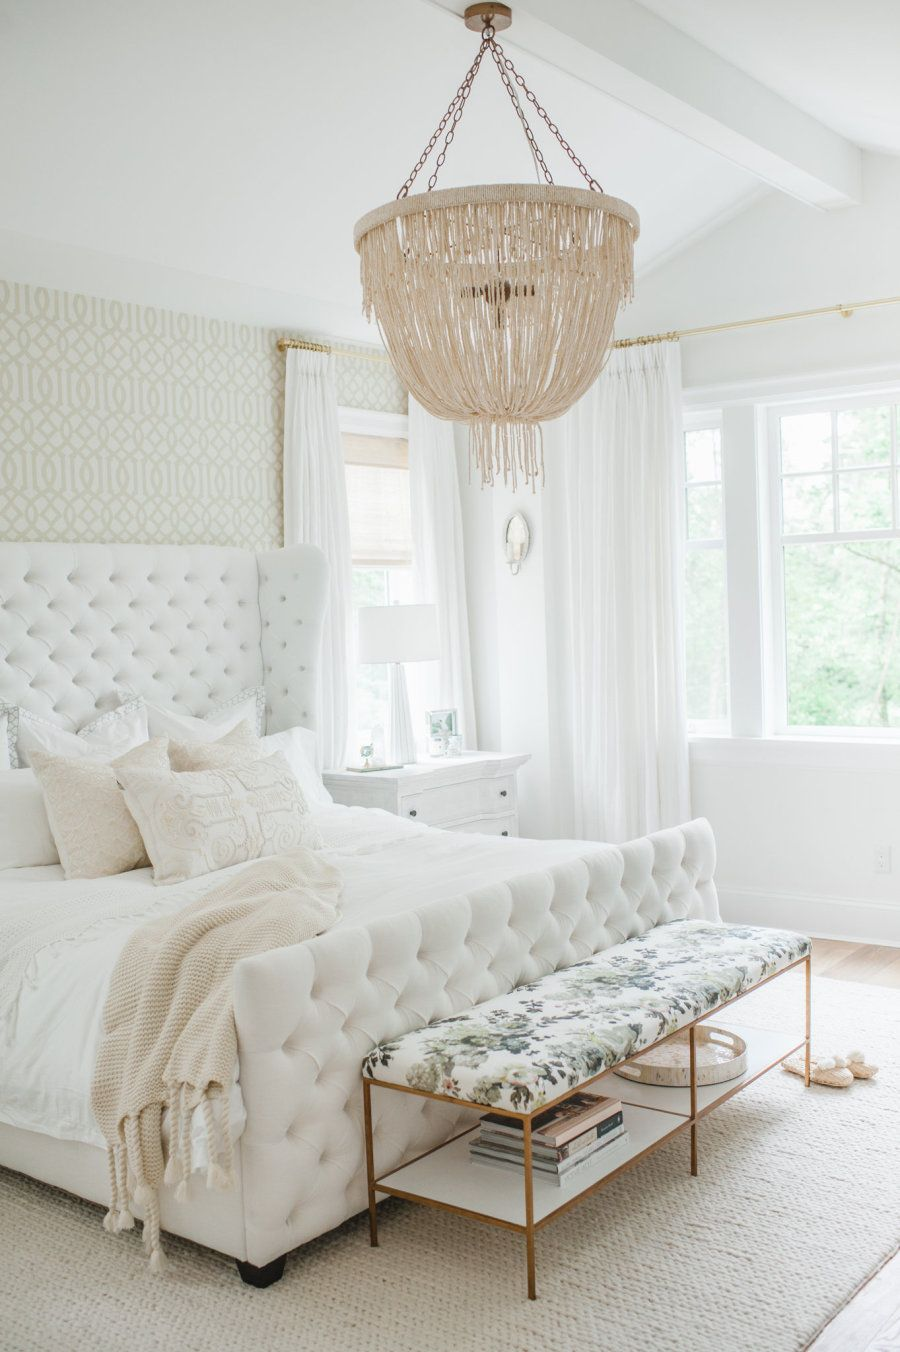 The Dreamiest White Bedroom You Will Ever Meet in 2018 ...